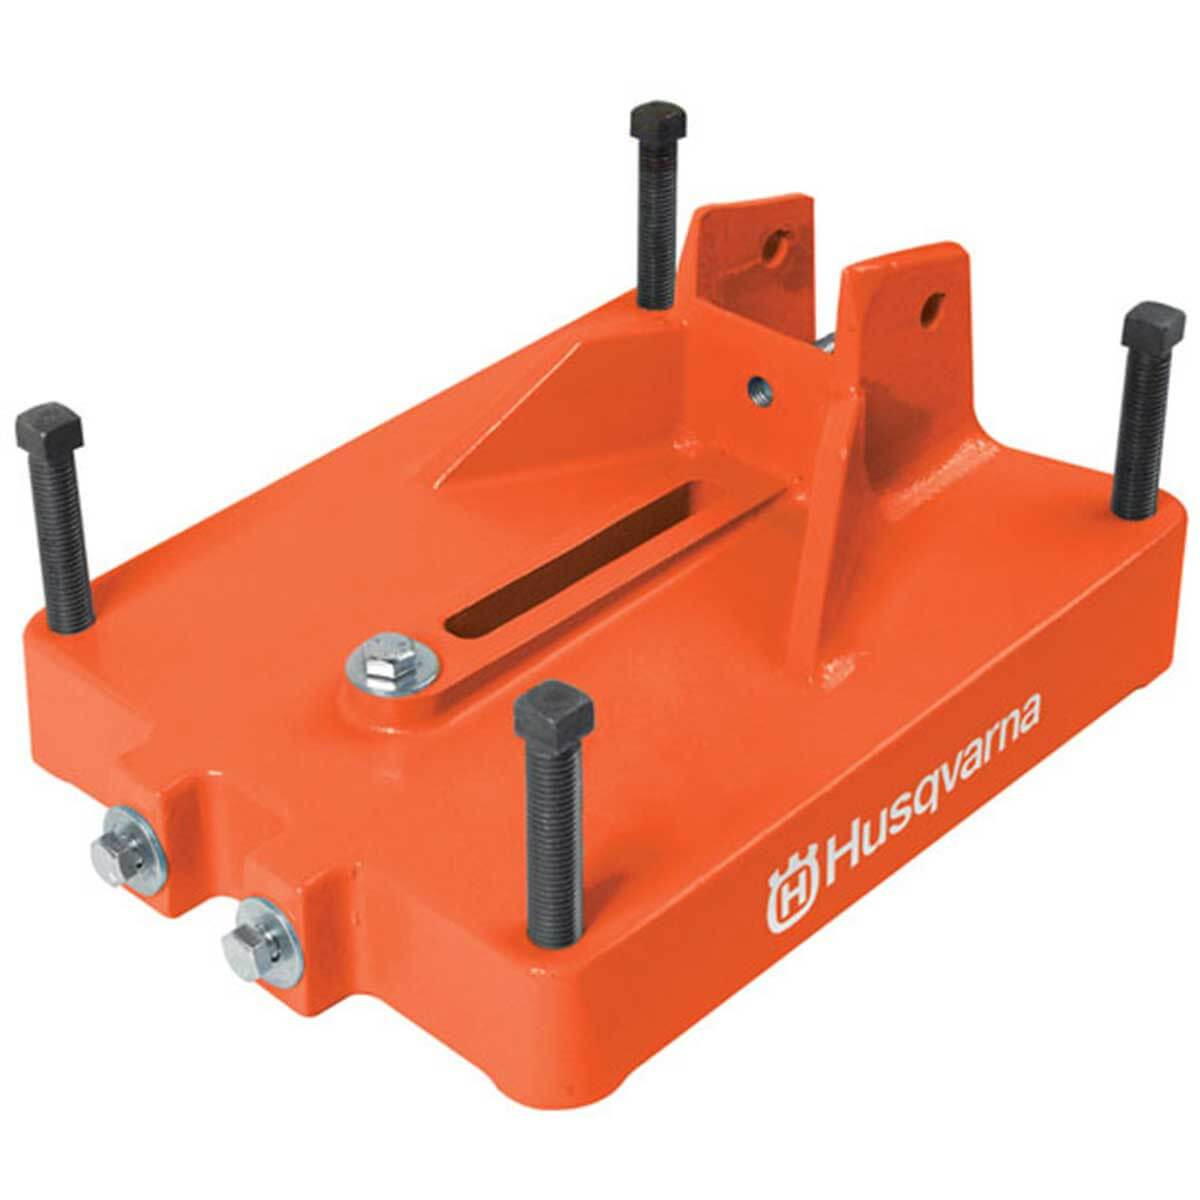 Husqvarna Combo Anchor Base DS700